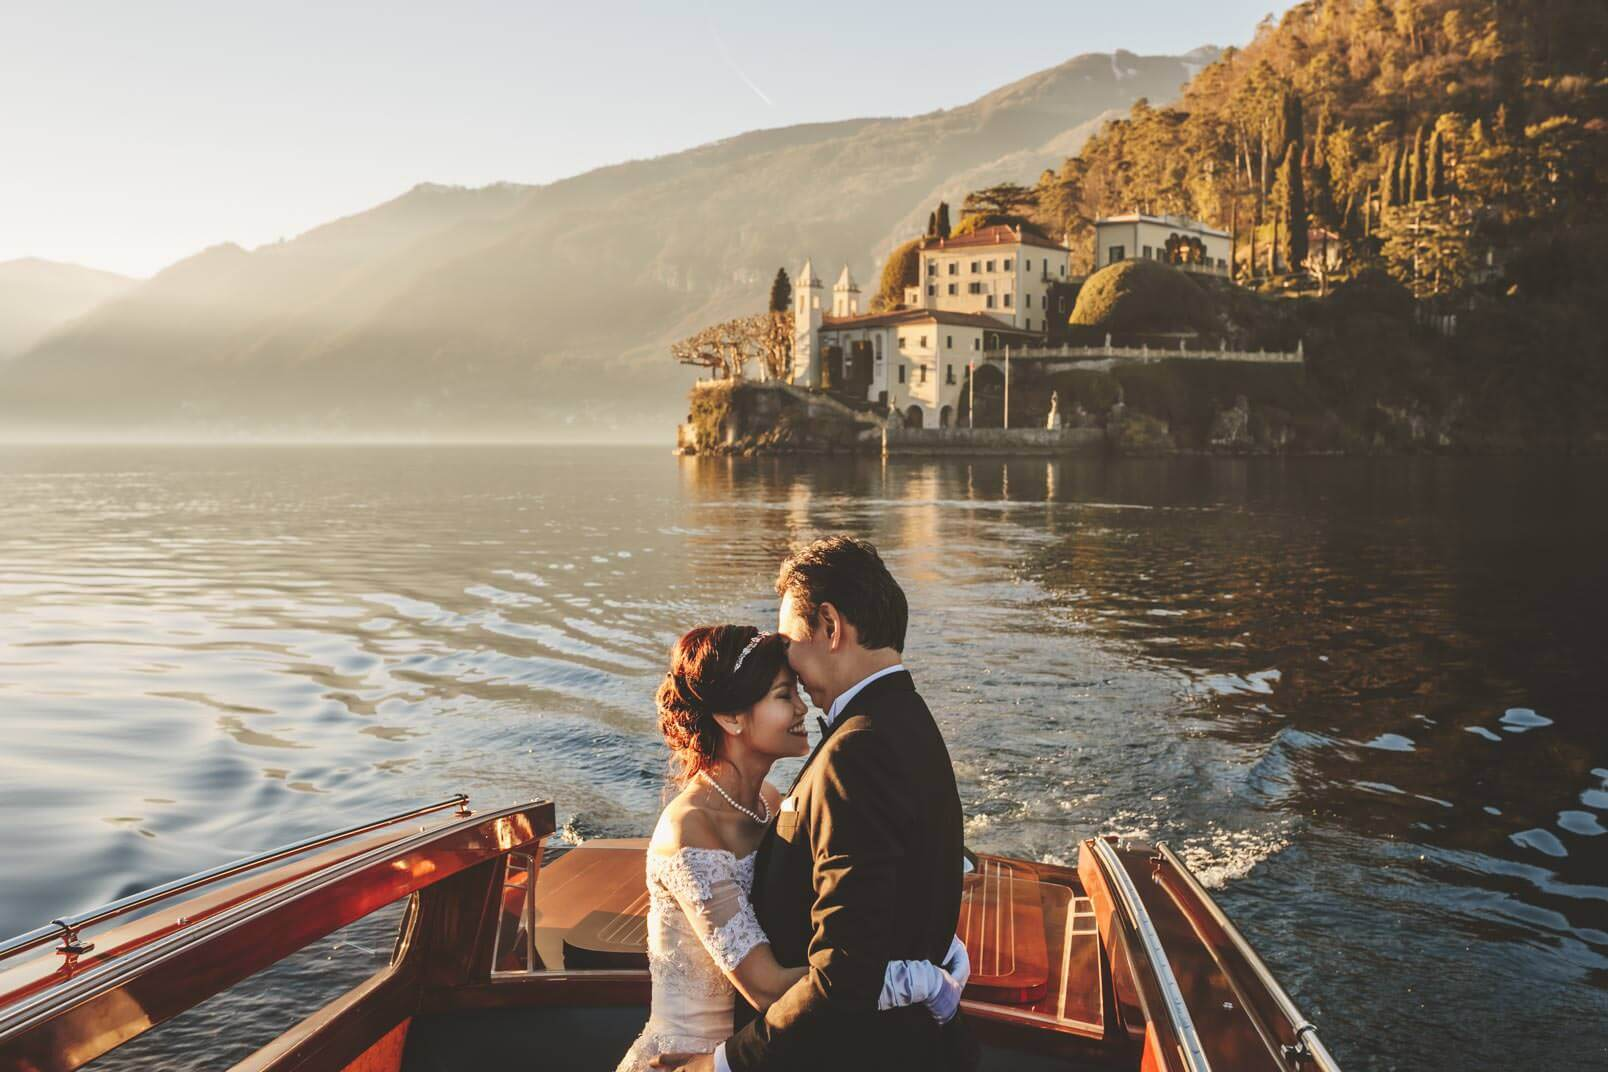 Villa Del Balbianello. Lake Como. Couple photo shooting during a wedding.